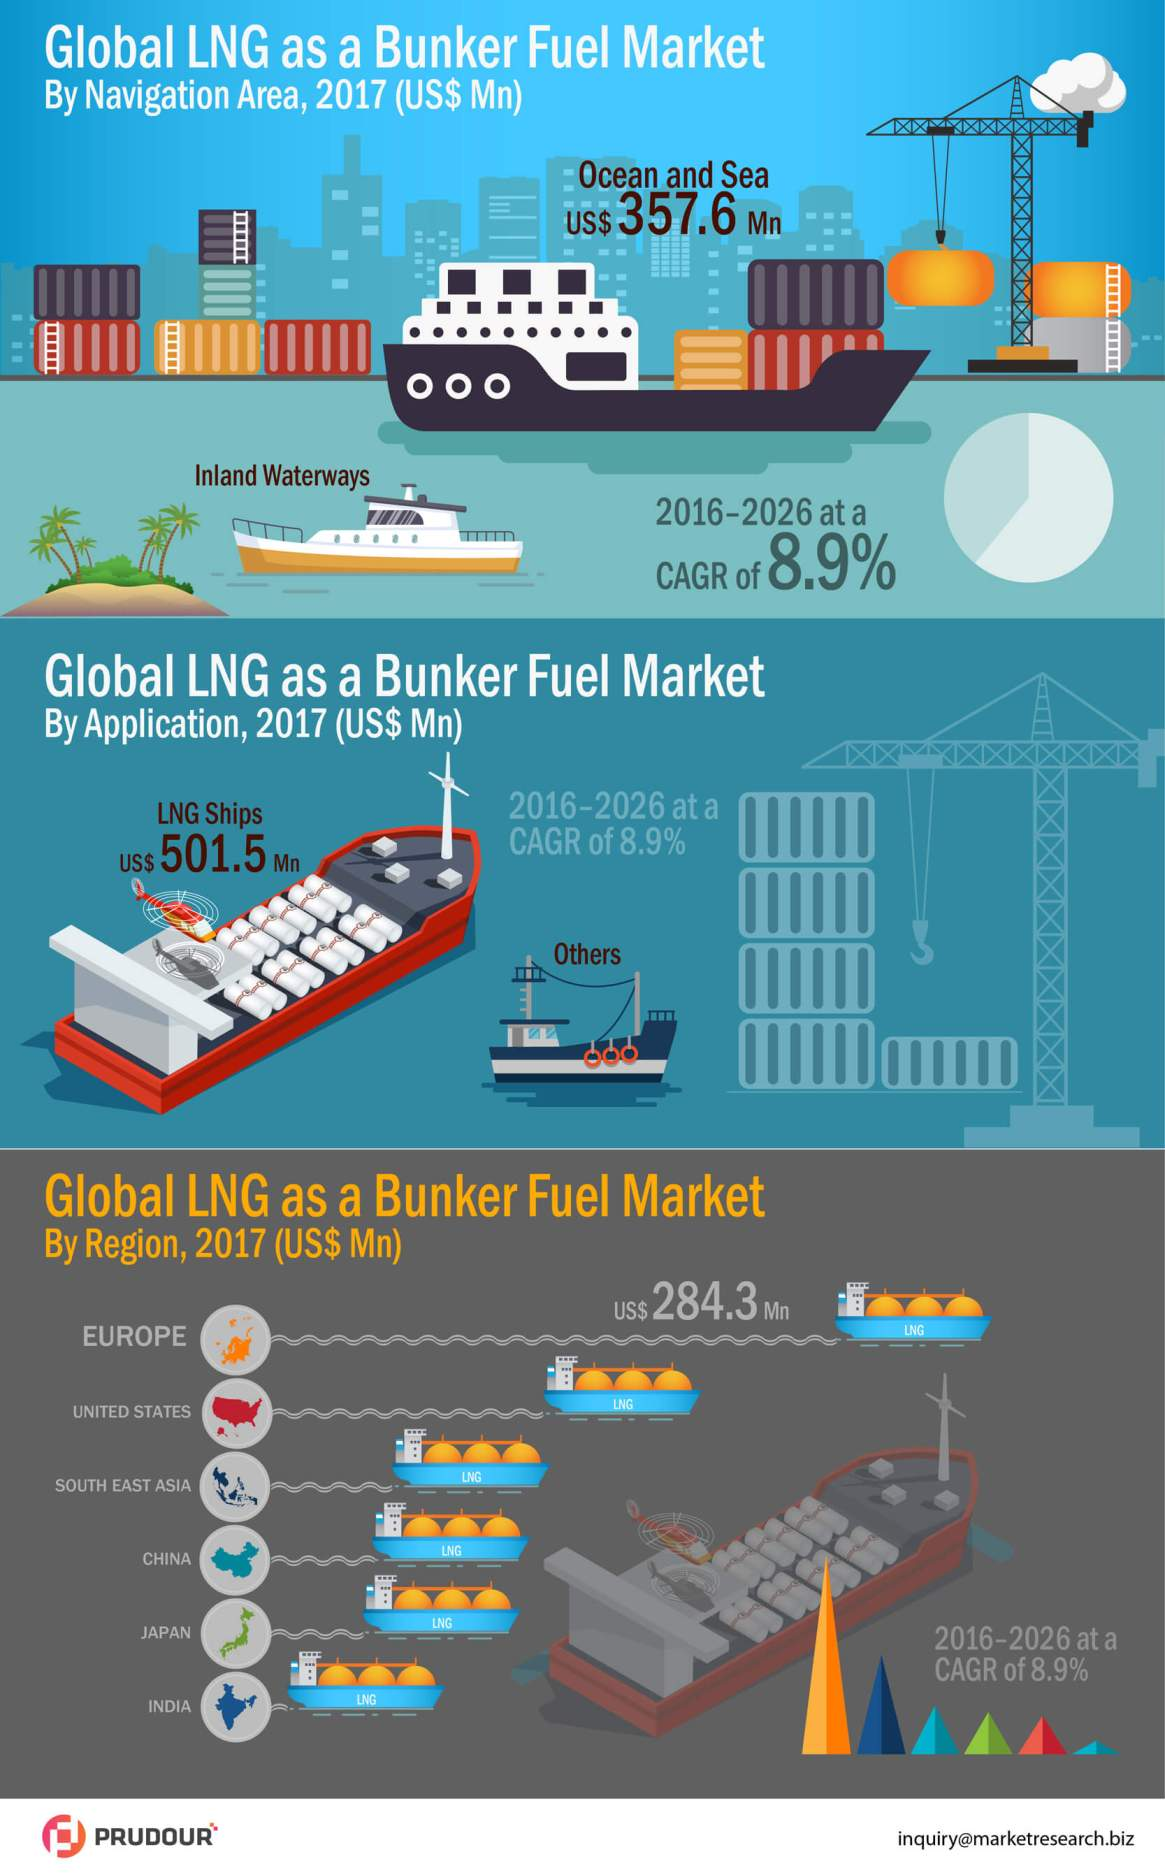 LNG as Bunker Fuel Market Witnessed CAGR of 8.5% By 2026